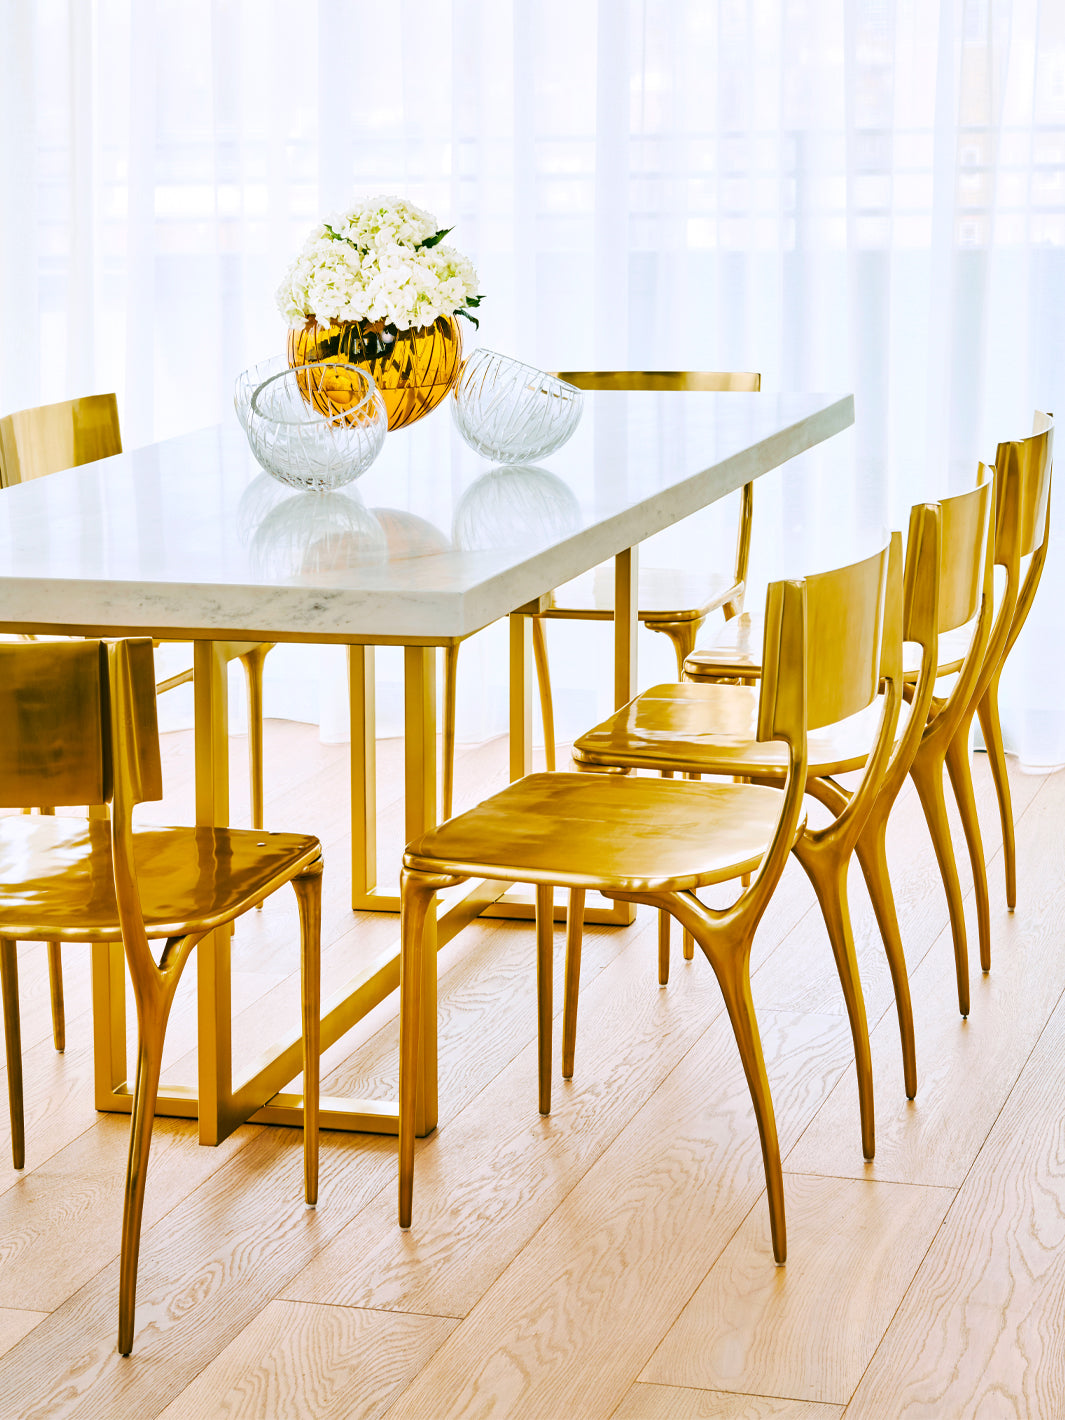 Residential Interior Design | Dining Room Design | Brass Dining Chairs & Brass Dining Table | Luxury Interiors | 5mm Design London